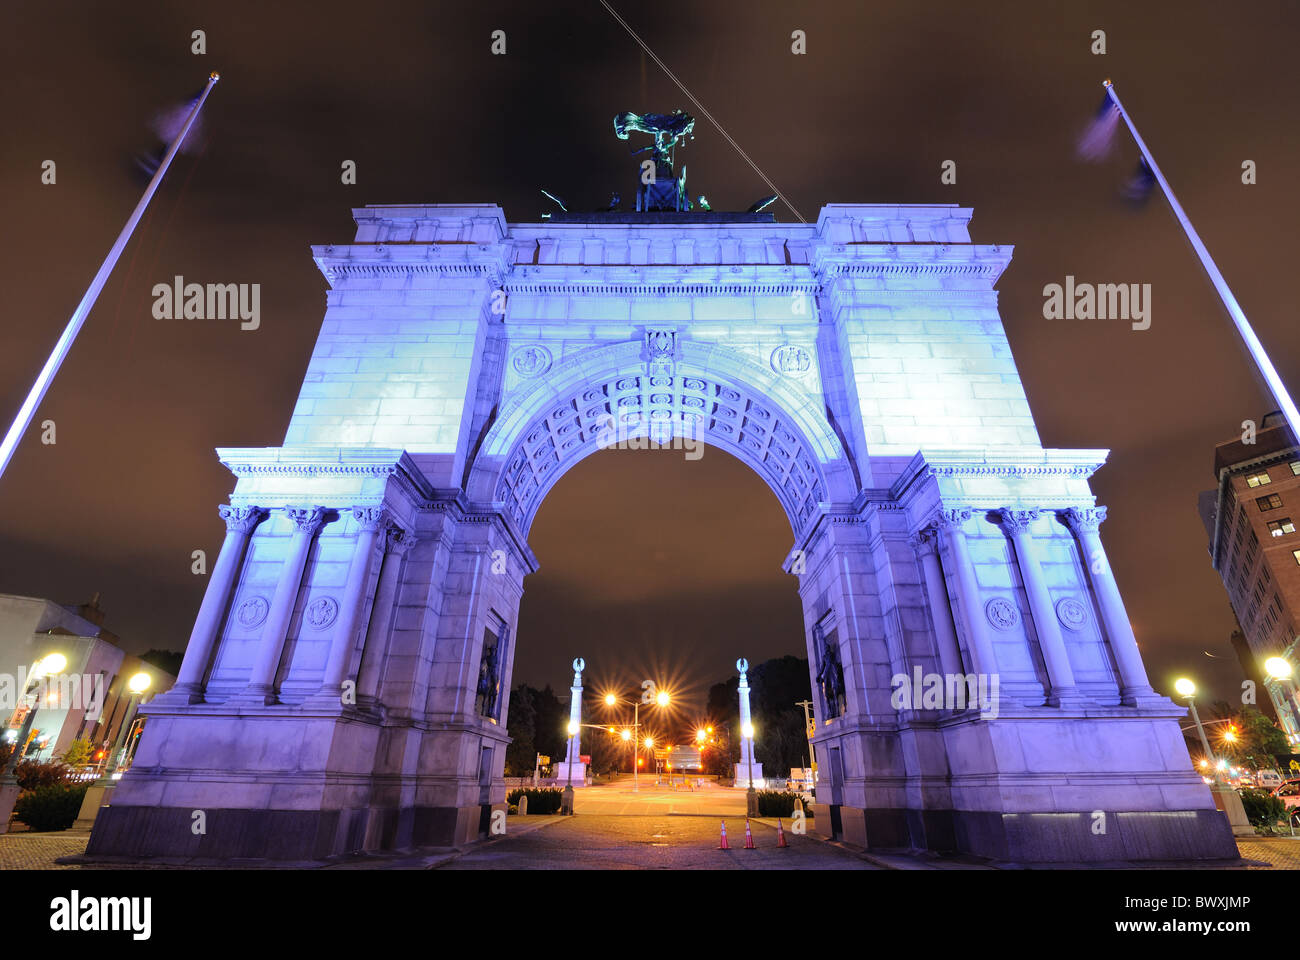 Soldiers' and Sailors' Arch in Prospect Park, Brooklyn, New York, USA. - Stock Image